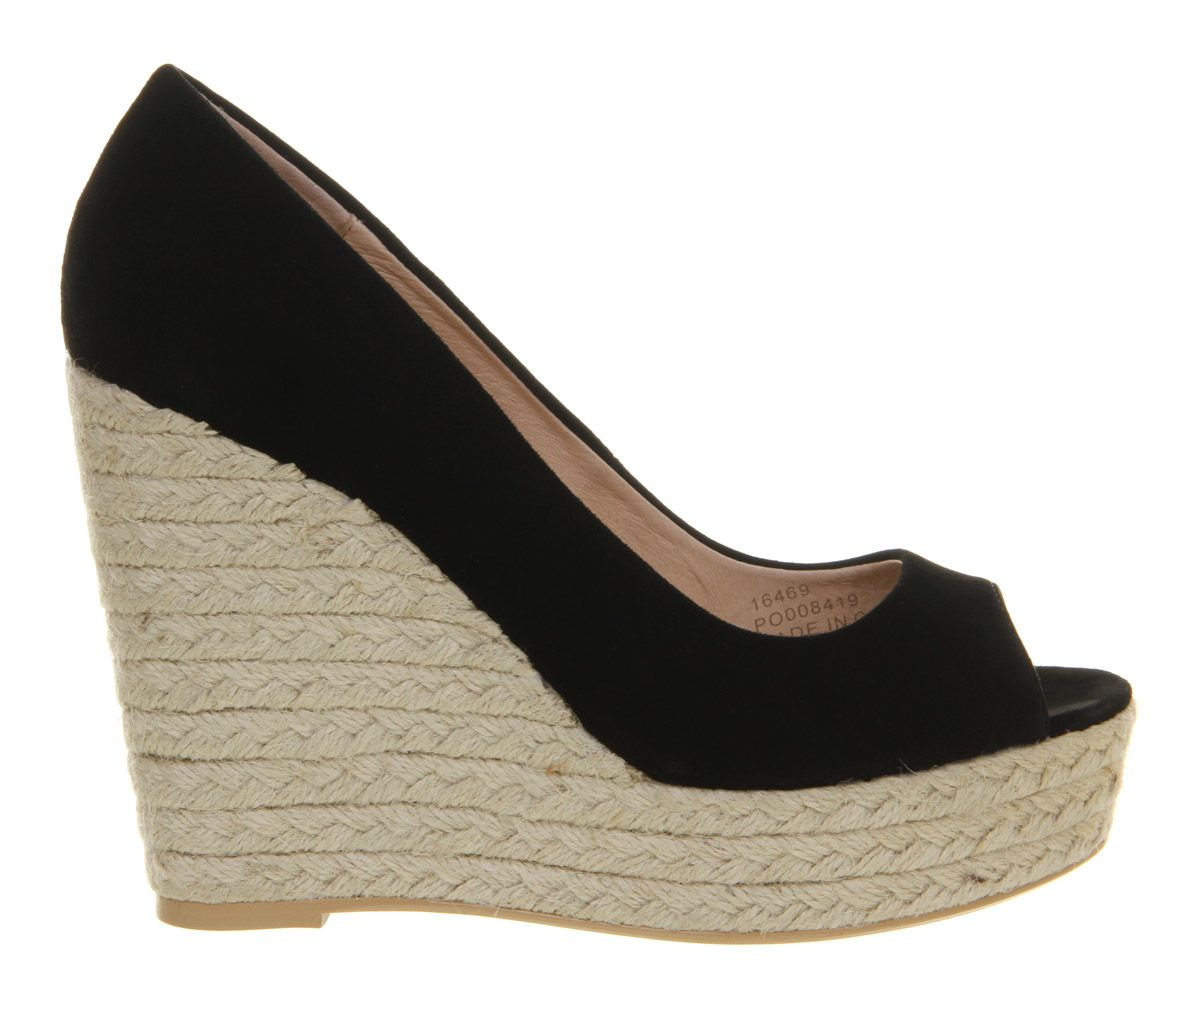 Joey espadrille wedges